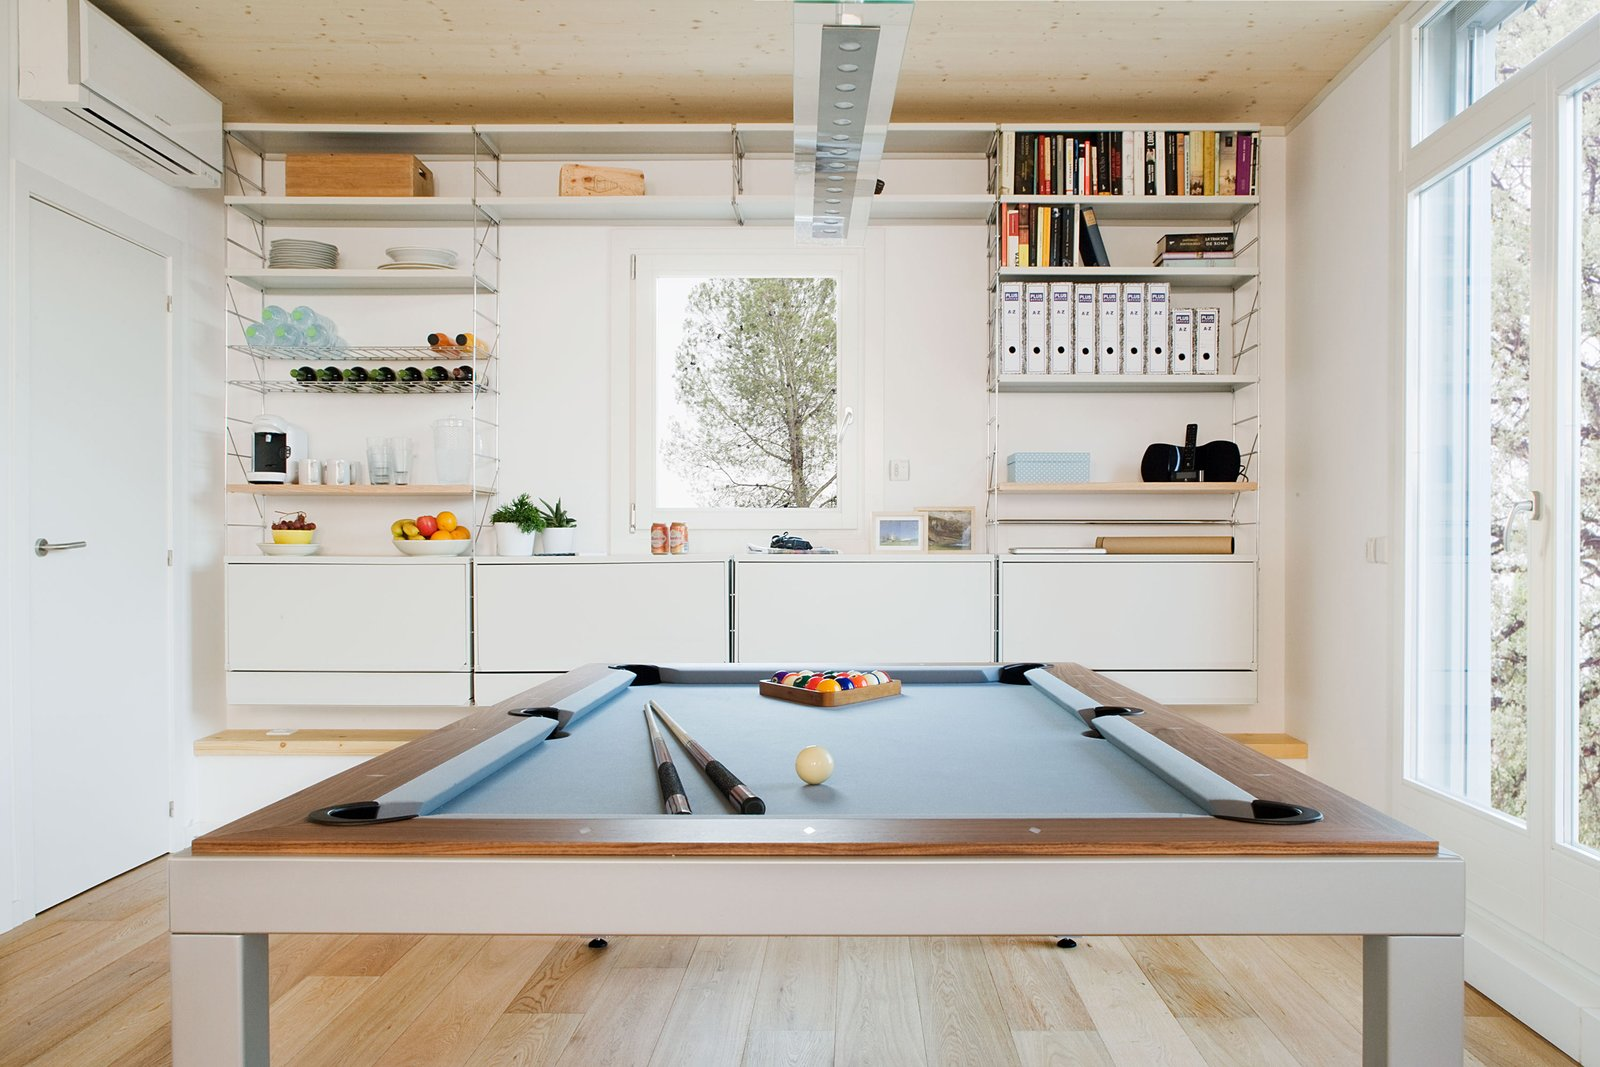 The dining room table transforms into a pool table for recreation.  Photo 5 of 7 in Plugged-In Prefab Collects Weather Data to Conserve Energy